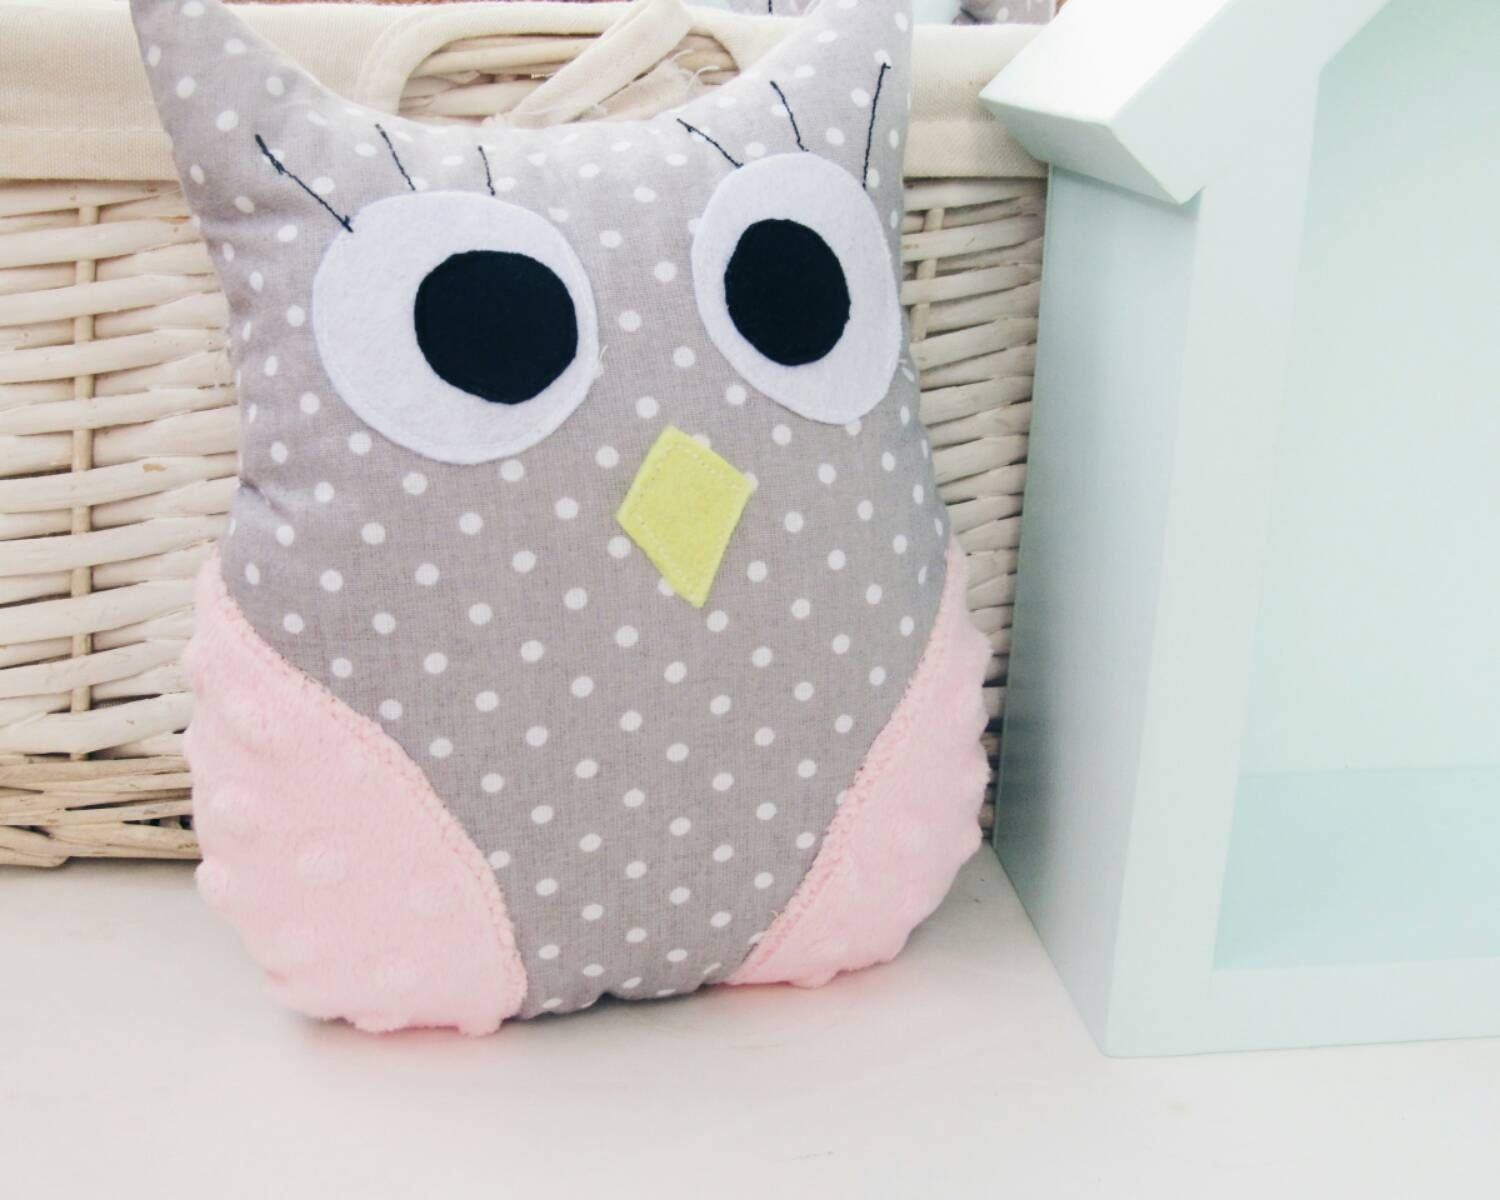 Handmade Owl Kids Room Decor Stuffed Animal Plush Owl New